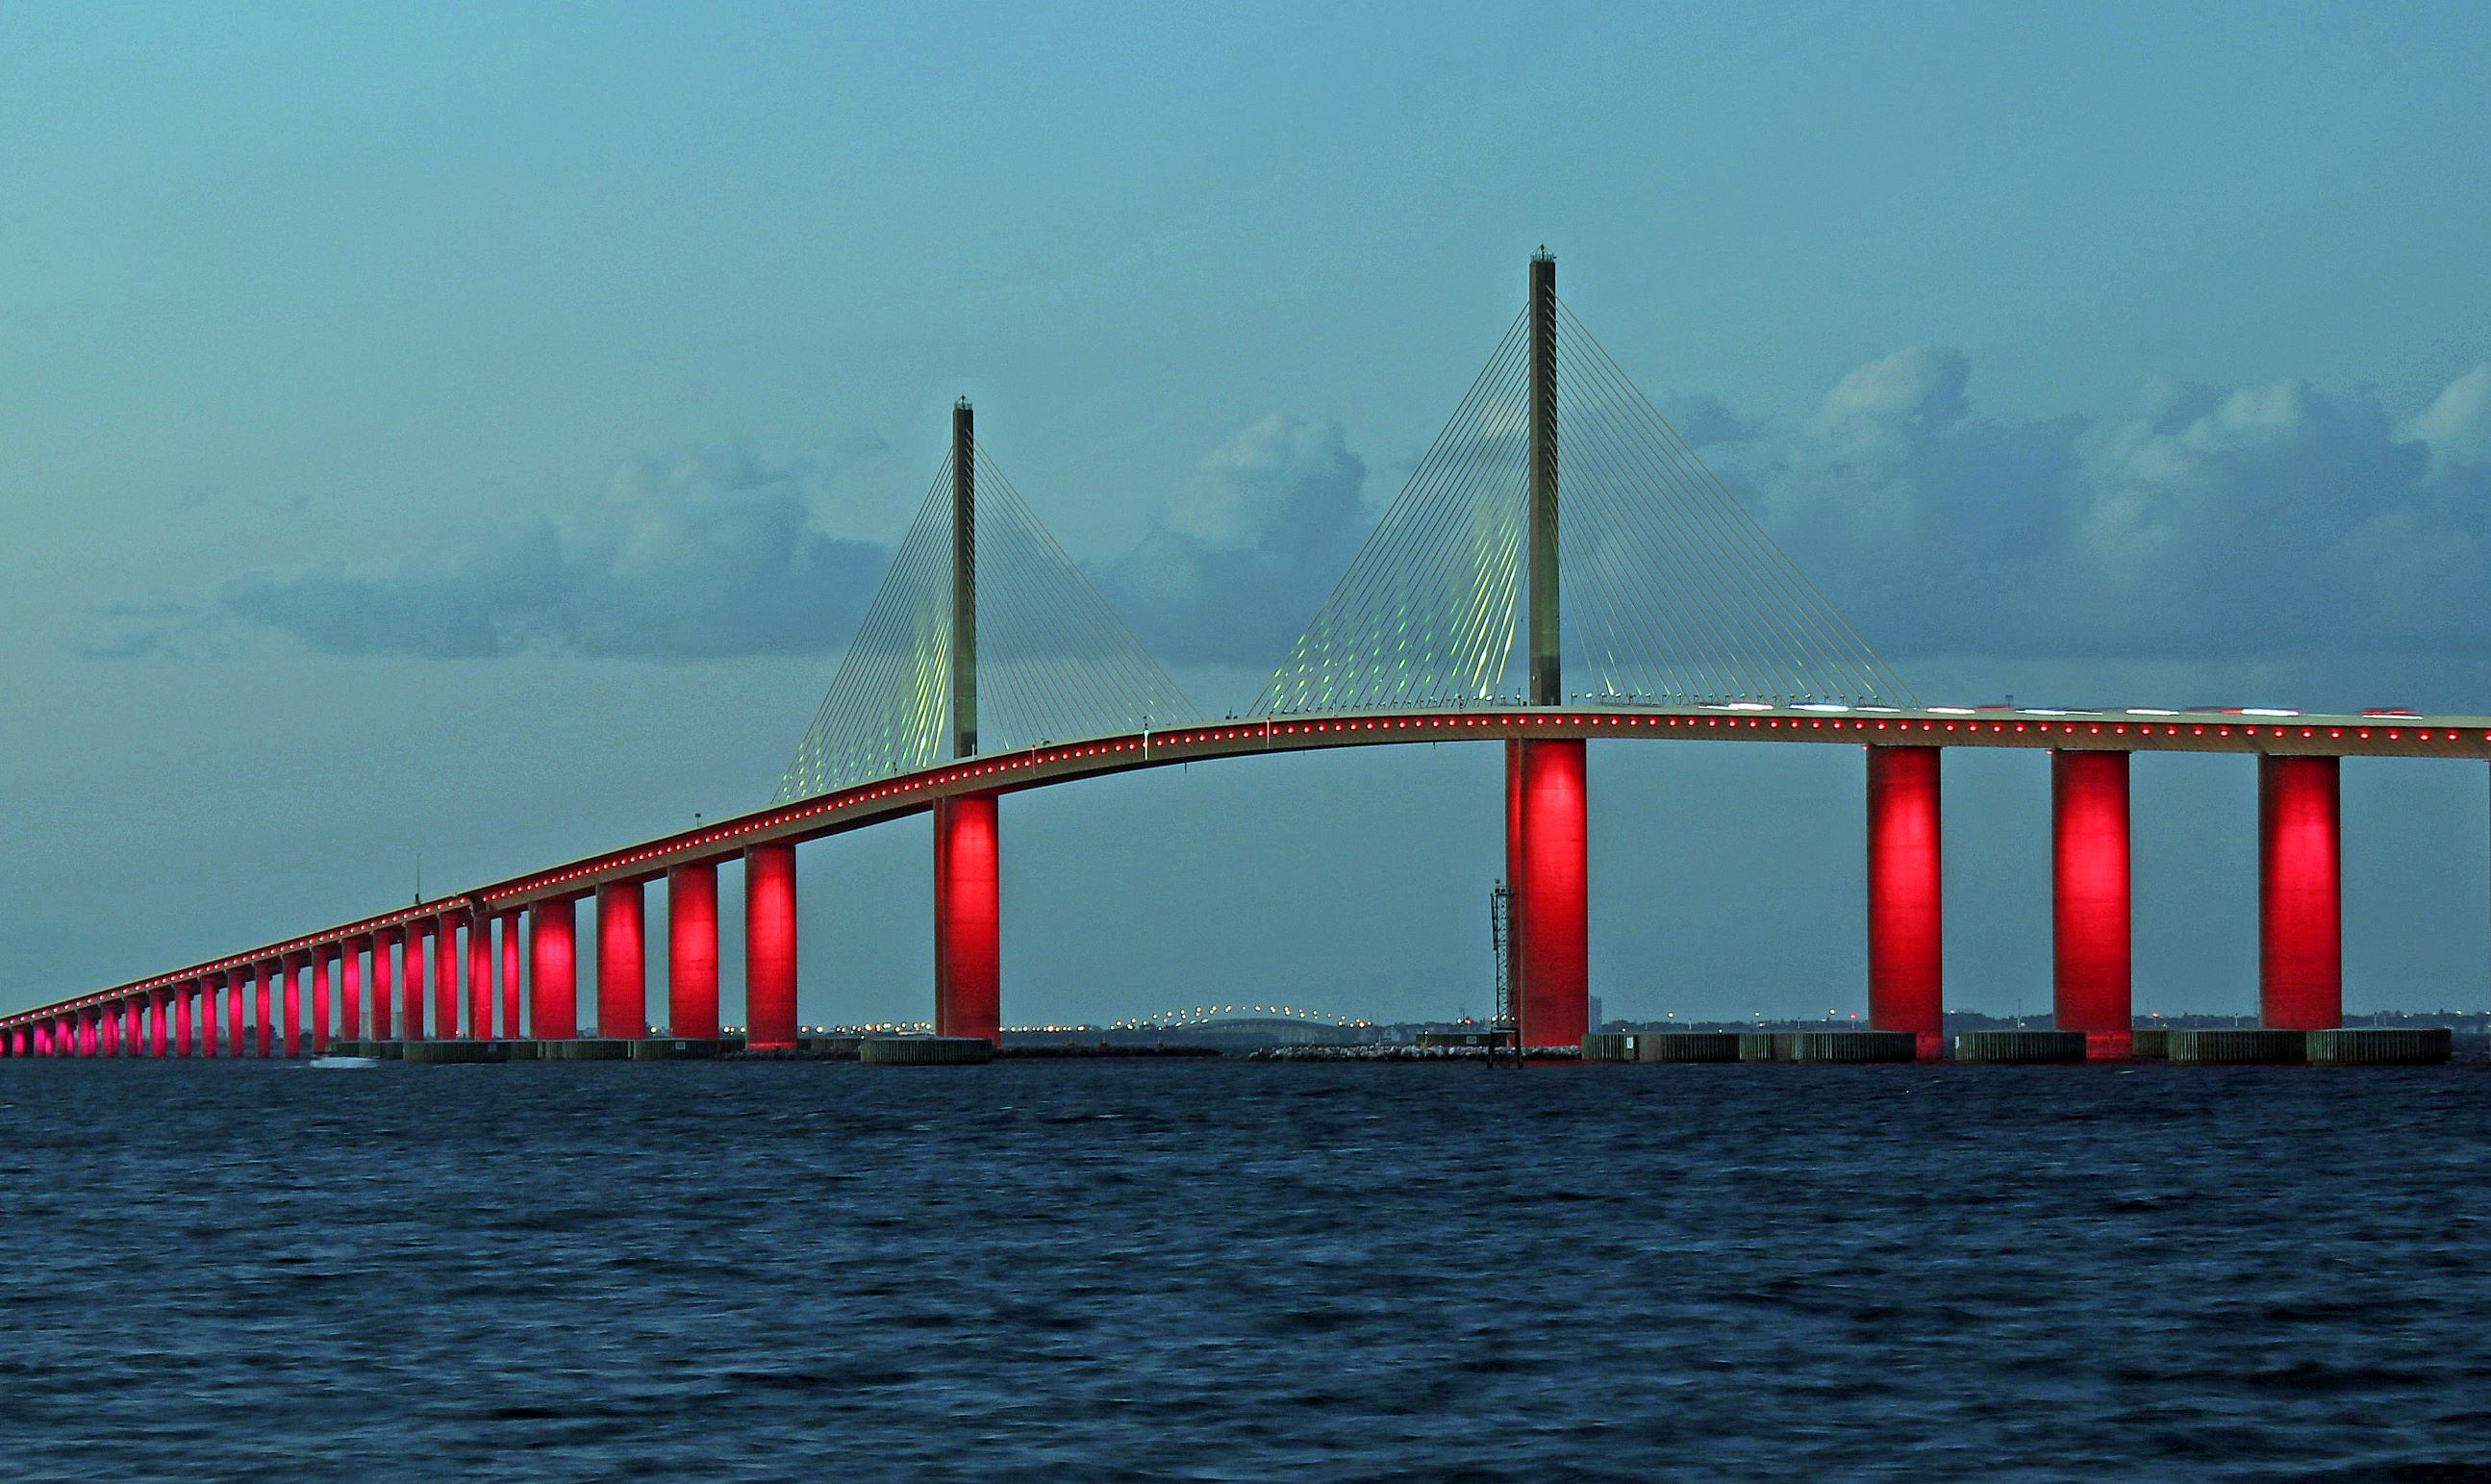 skyway bridge 198 (2)pp.jpg